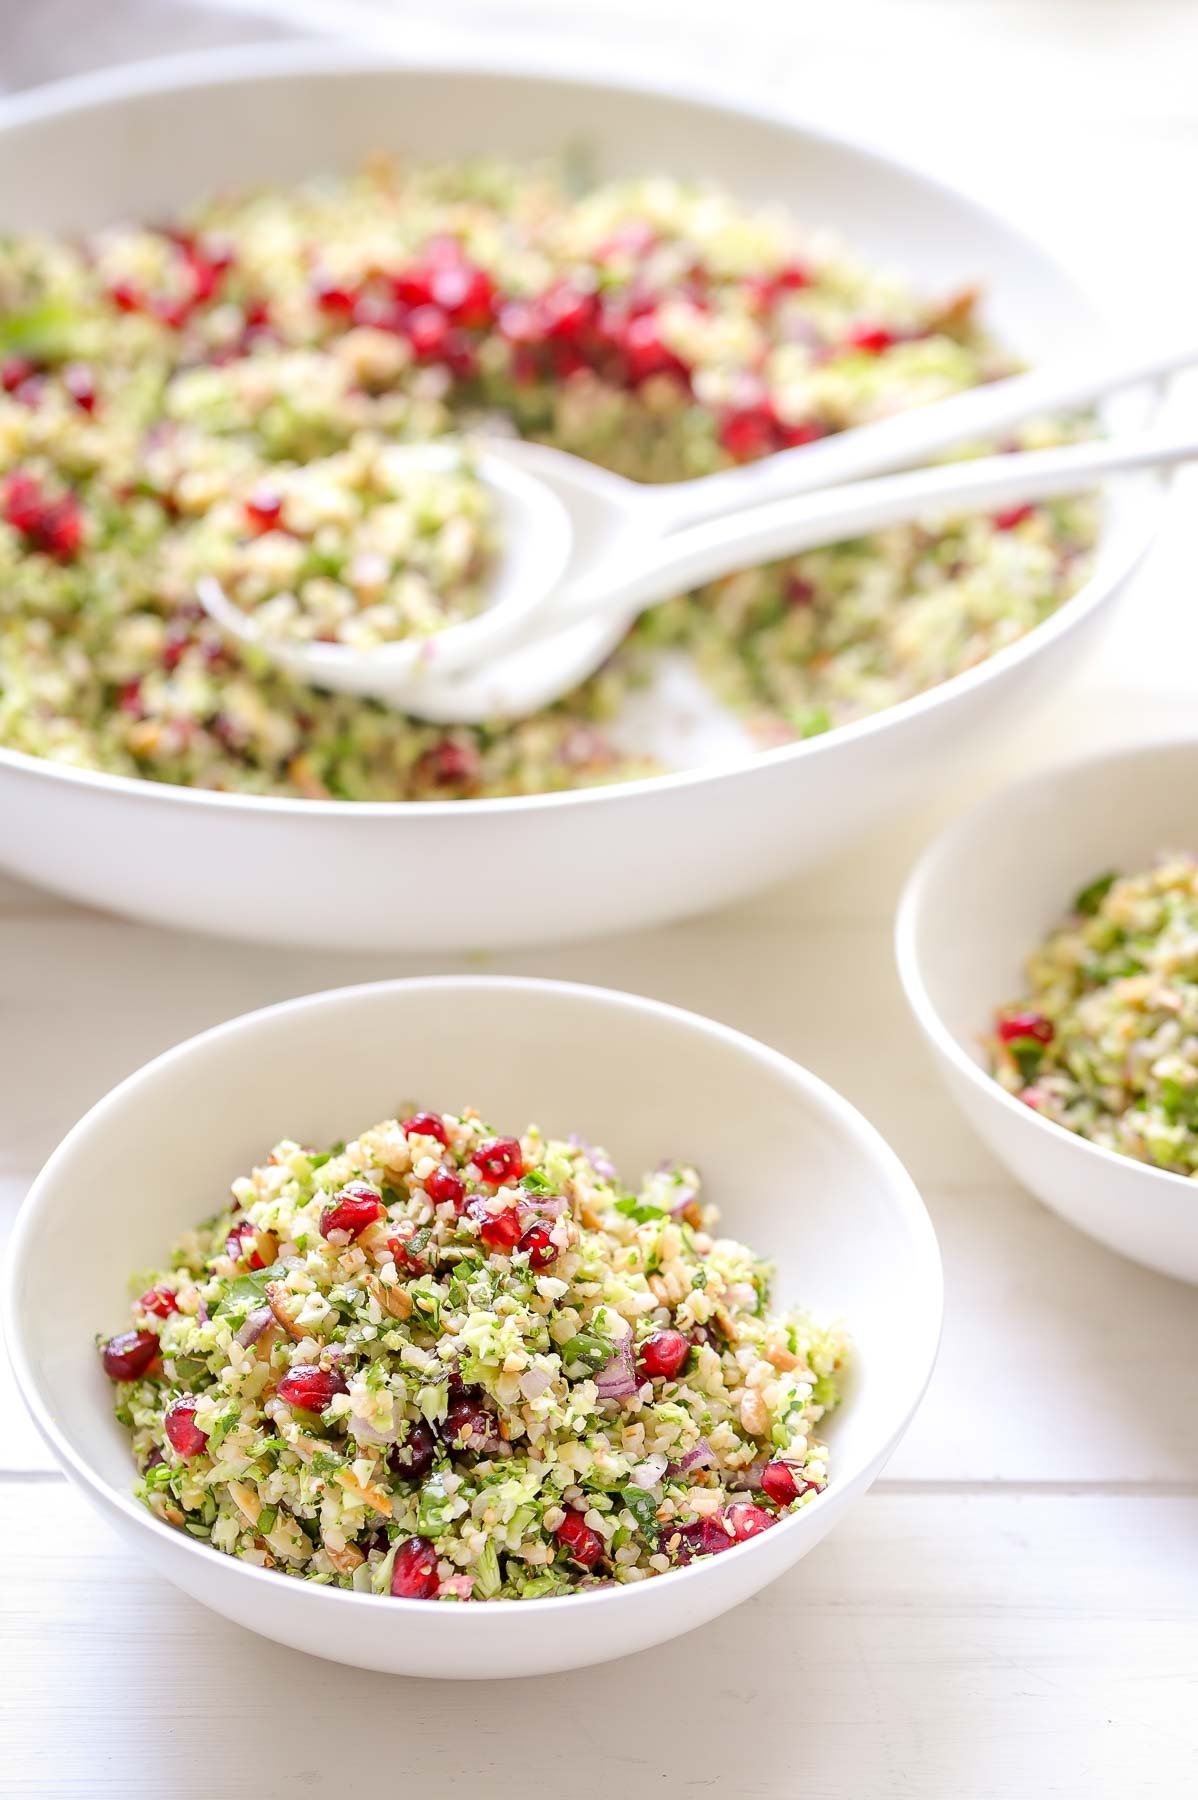 Broccoli Tabbouleh with Toasted Nuts served into bowls